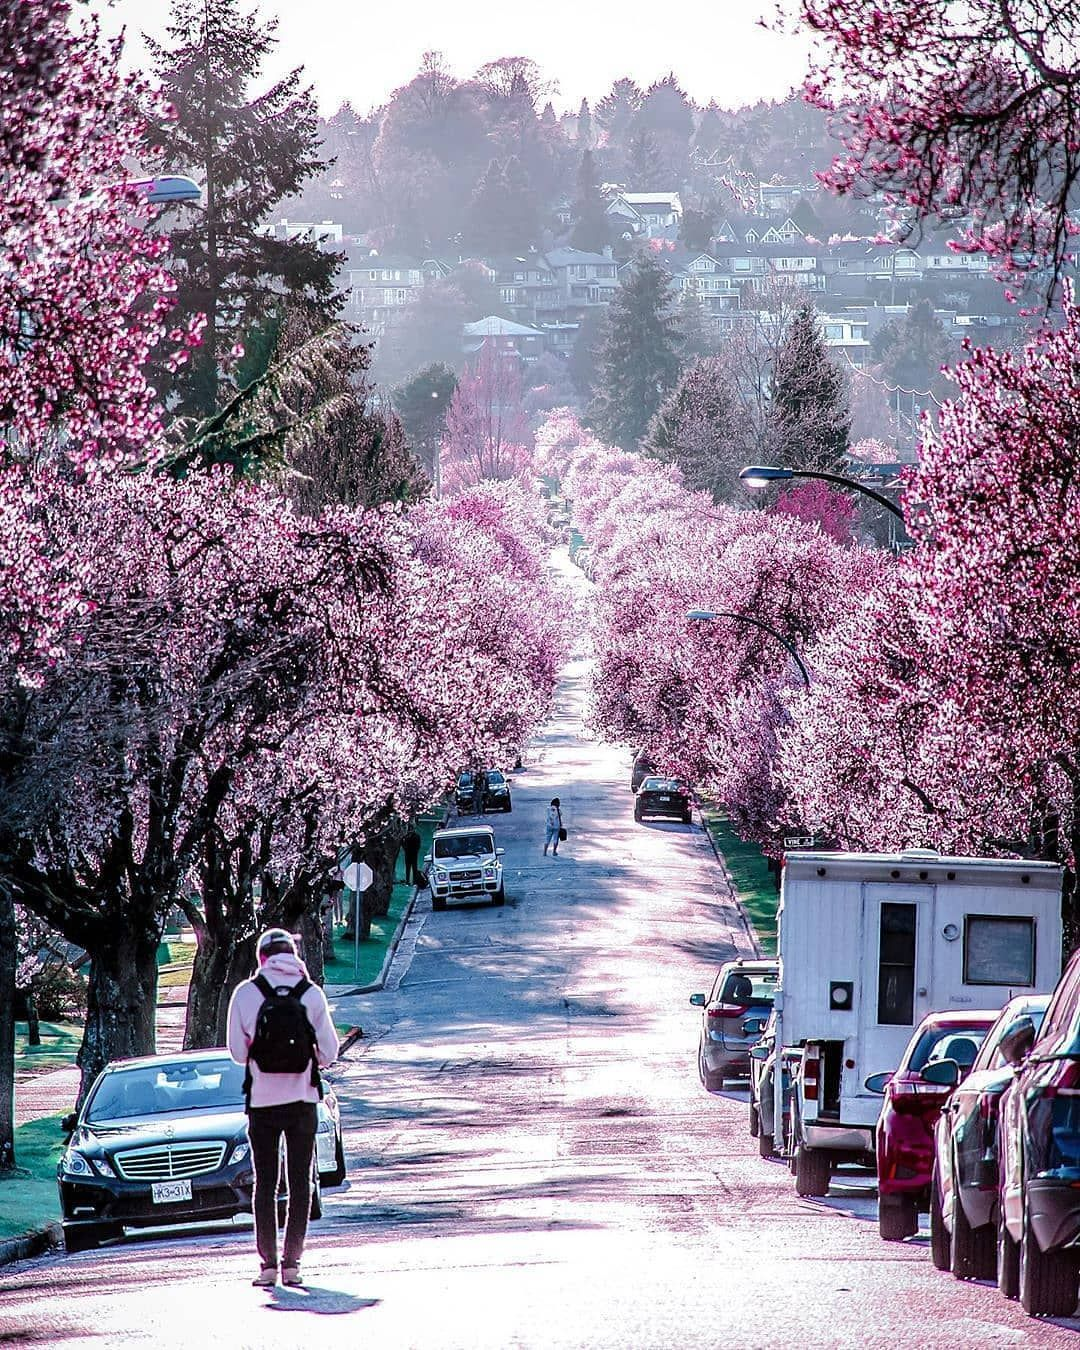 Enjoy With Canadaparadise On Instagram An Absolutely Pink Cherry Blossoms Spring Tag Someone Likes Comments